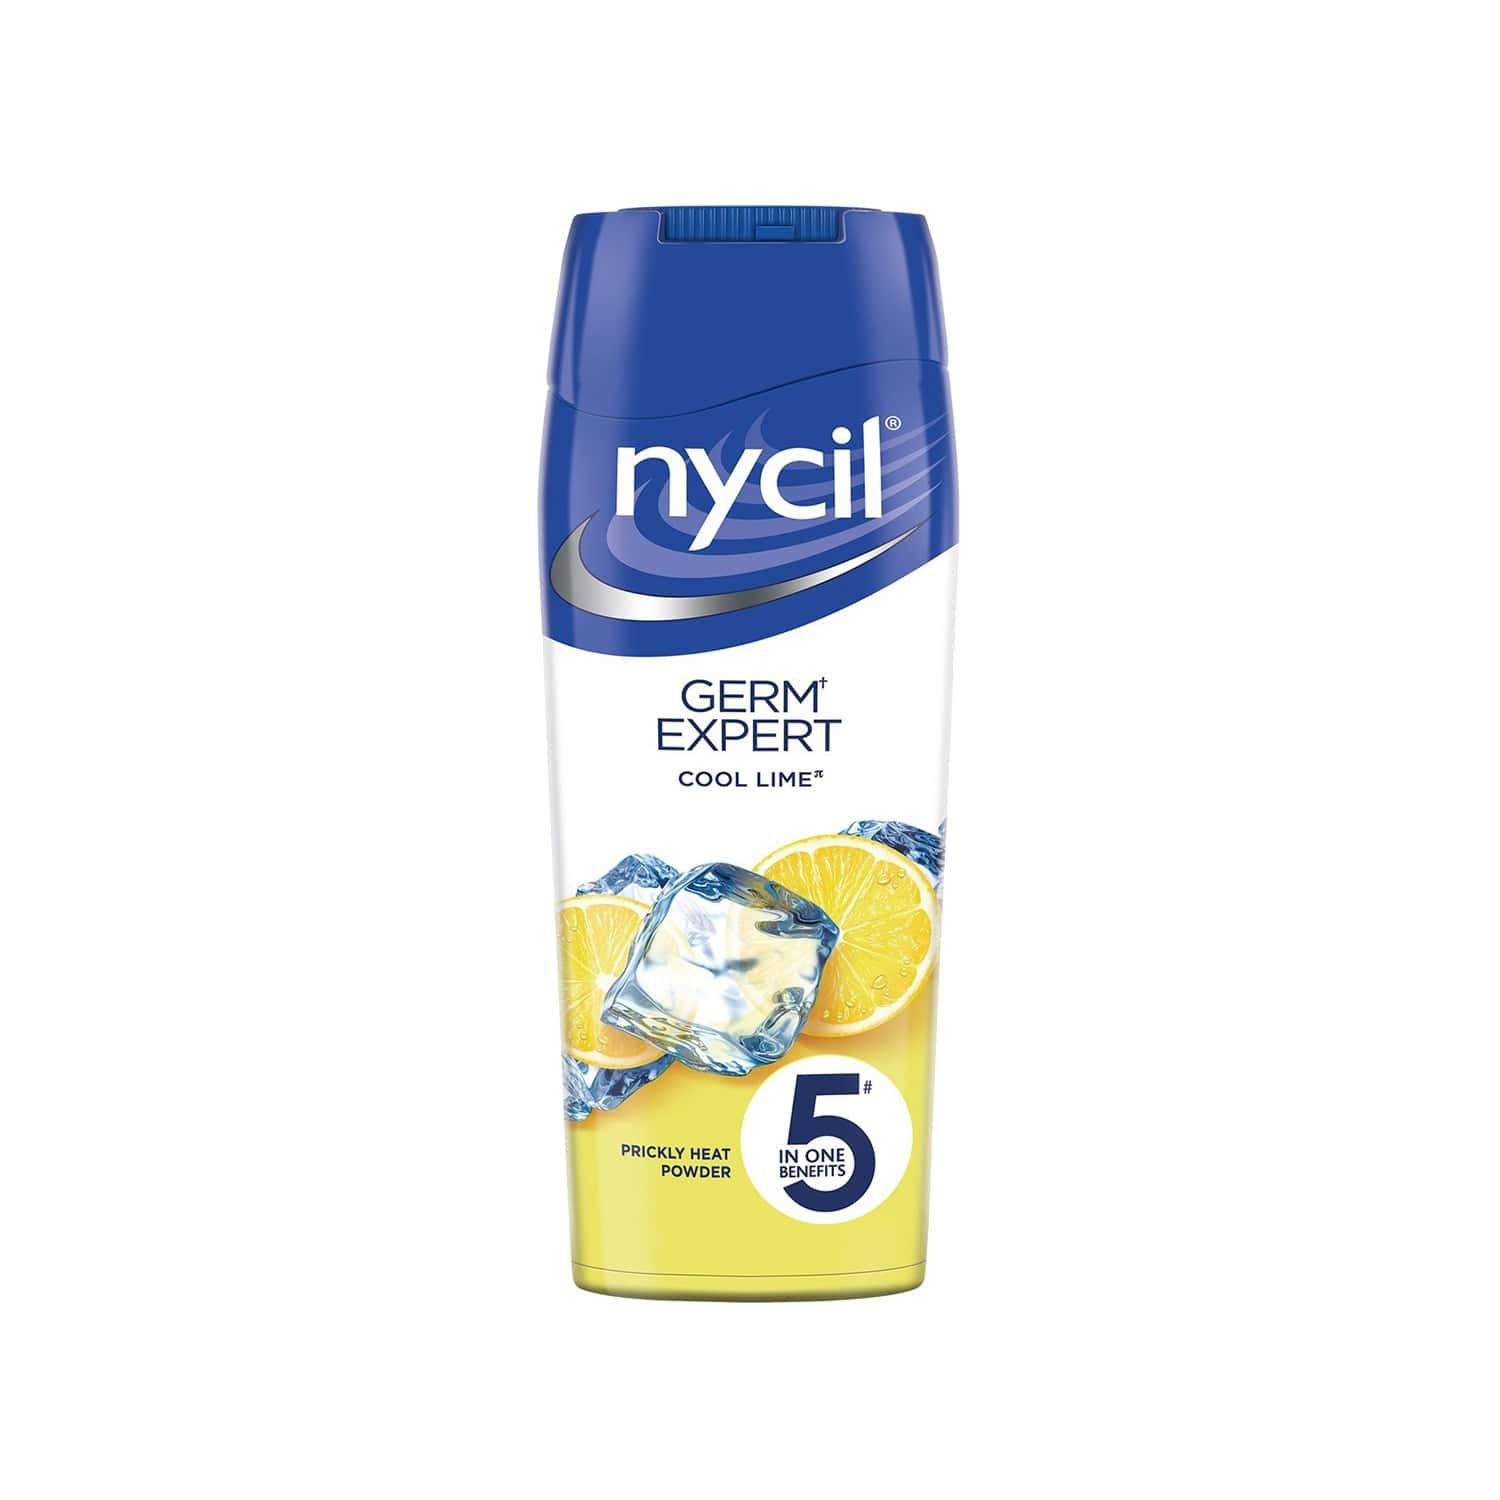 Nycil Cool Lime Prickly Heat Talcum Powder  Bottle Of 150 G